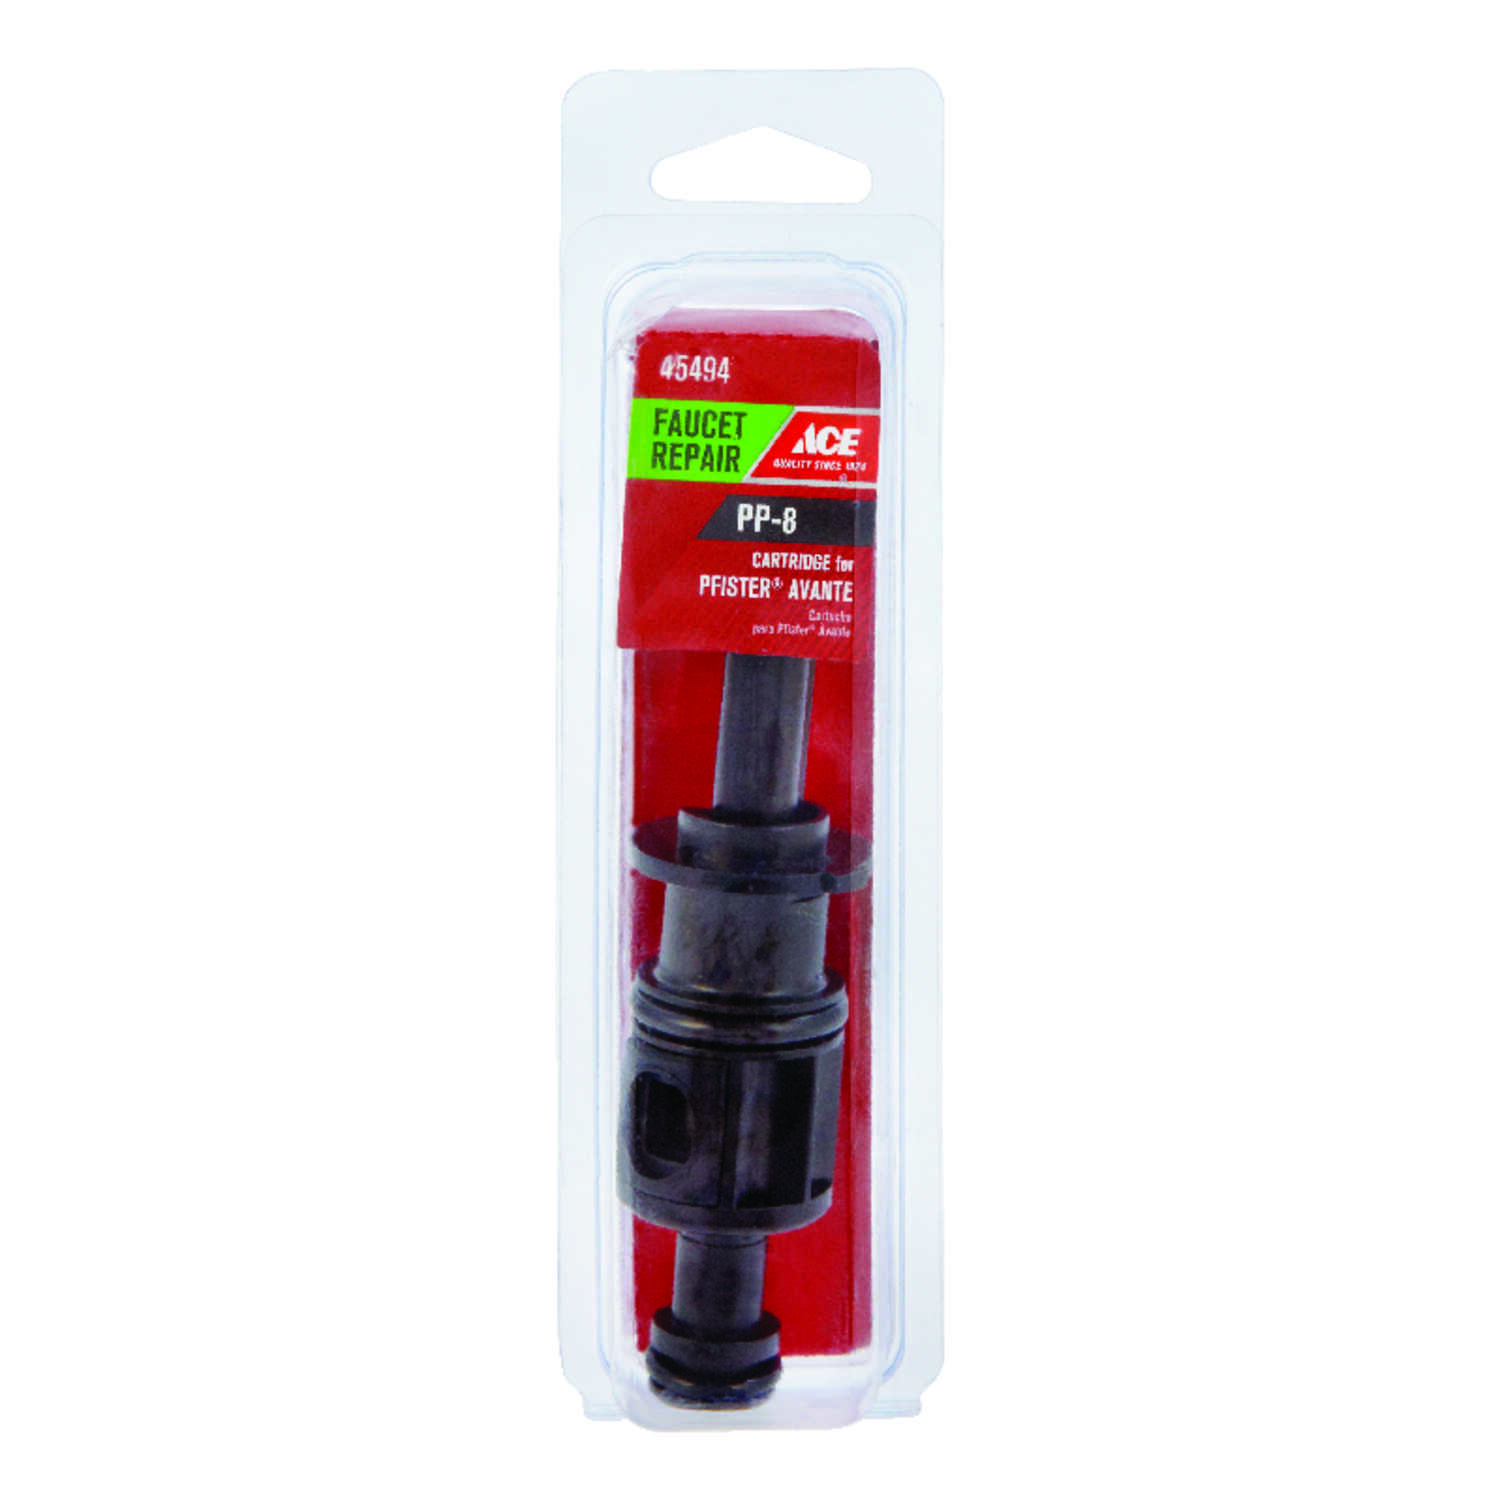 Ace  Hot and Cold  PP-8  Faucet Cartridge  For Price Pfister